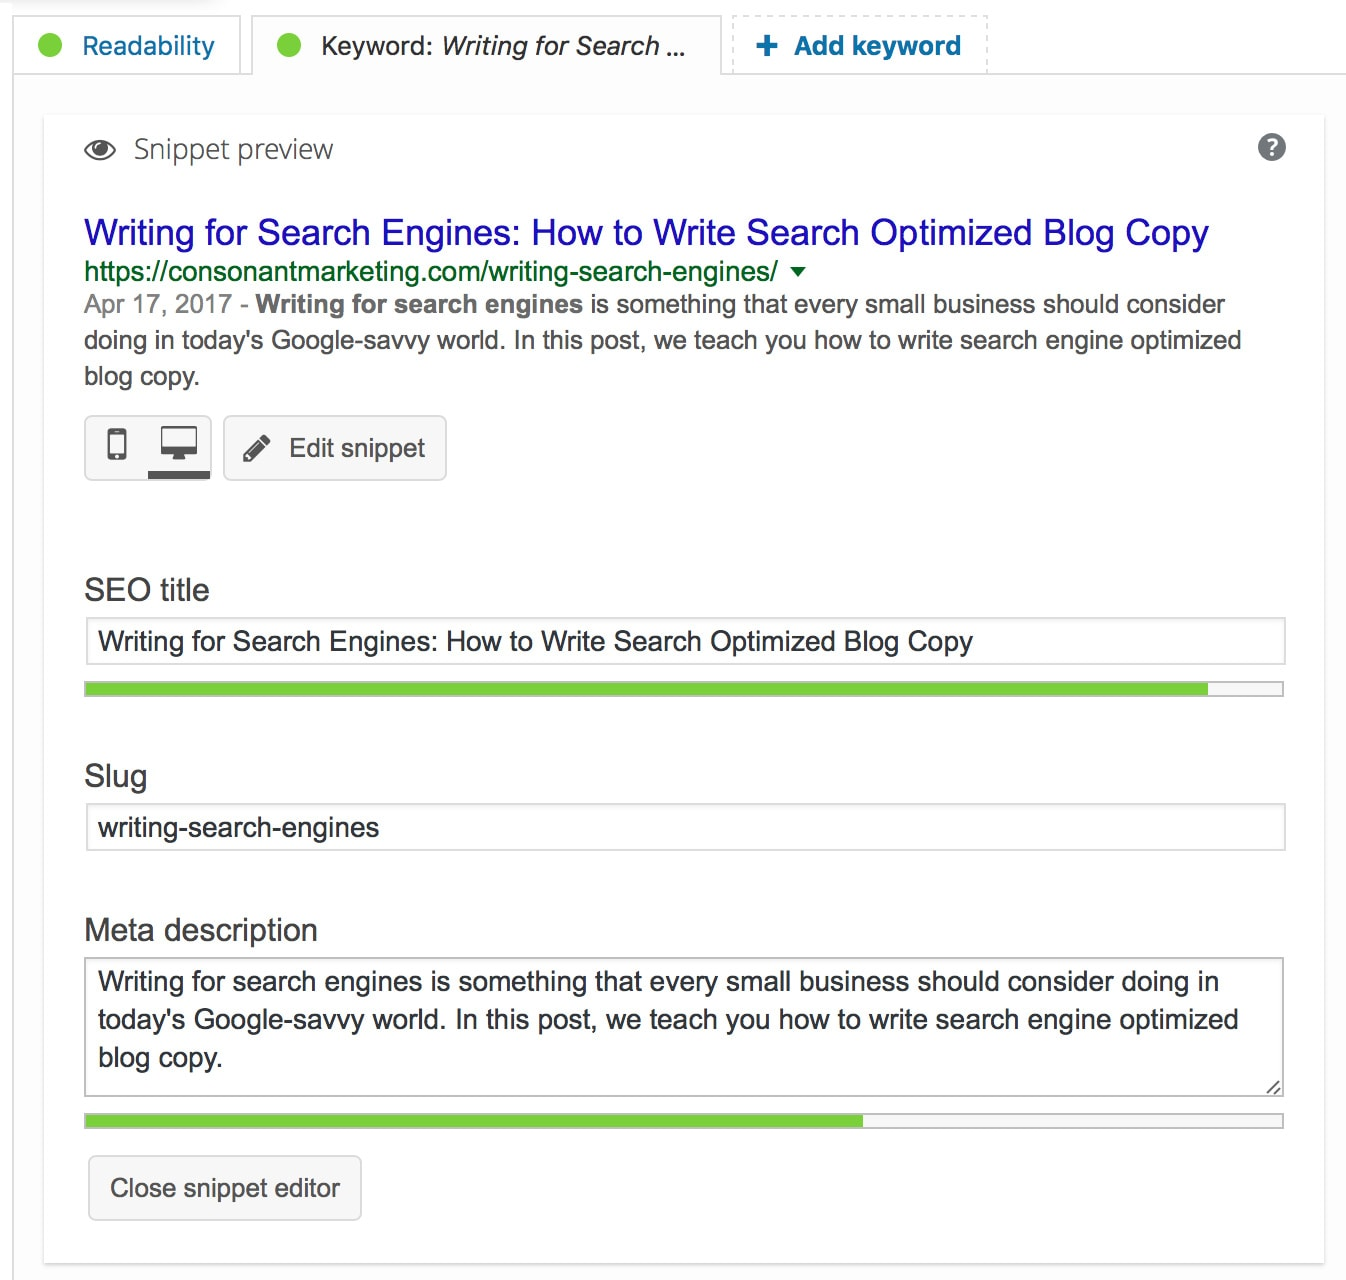 How to write search optimized blog copy